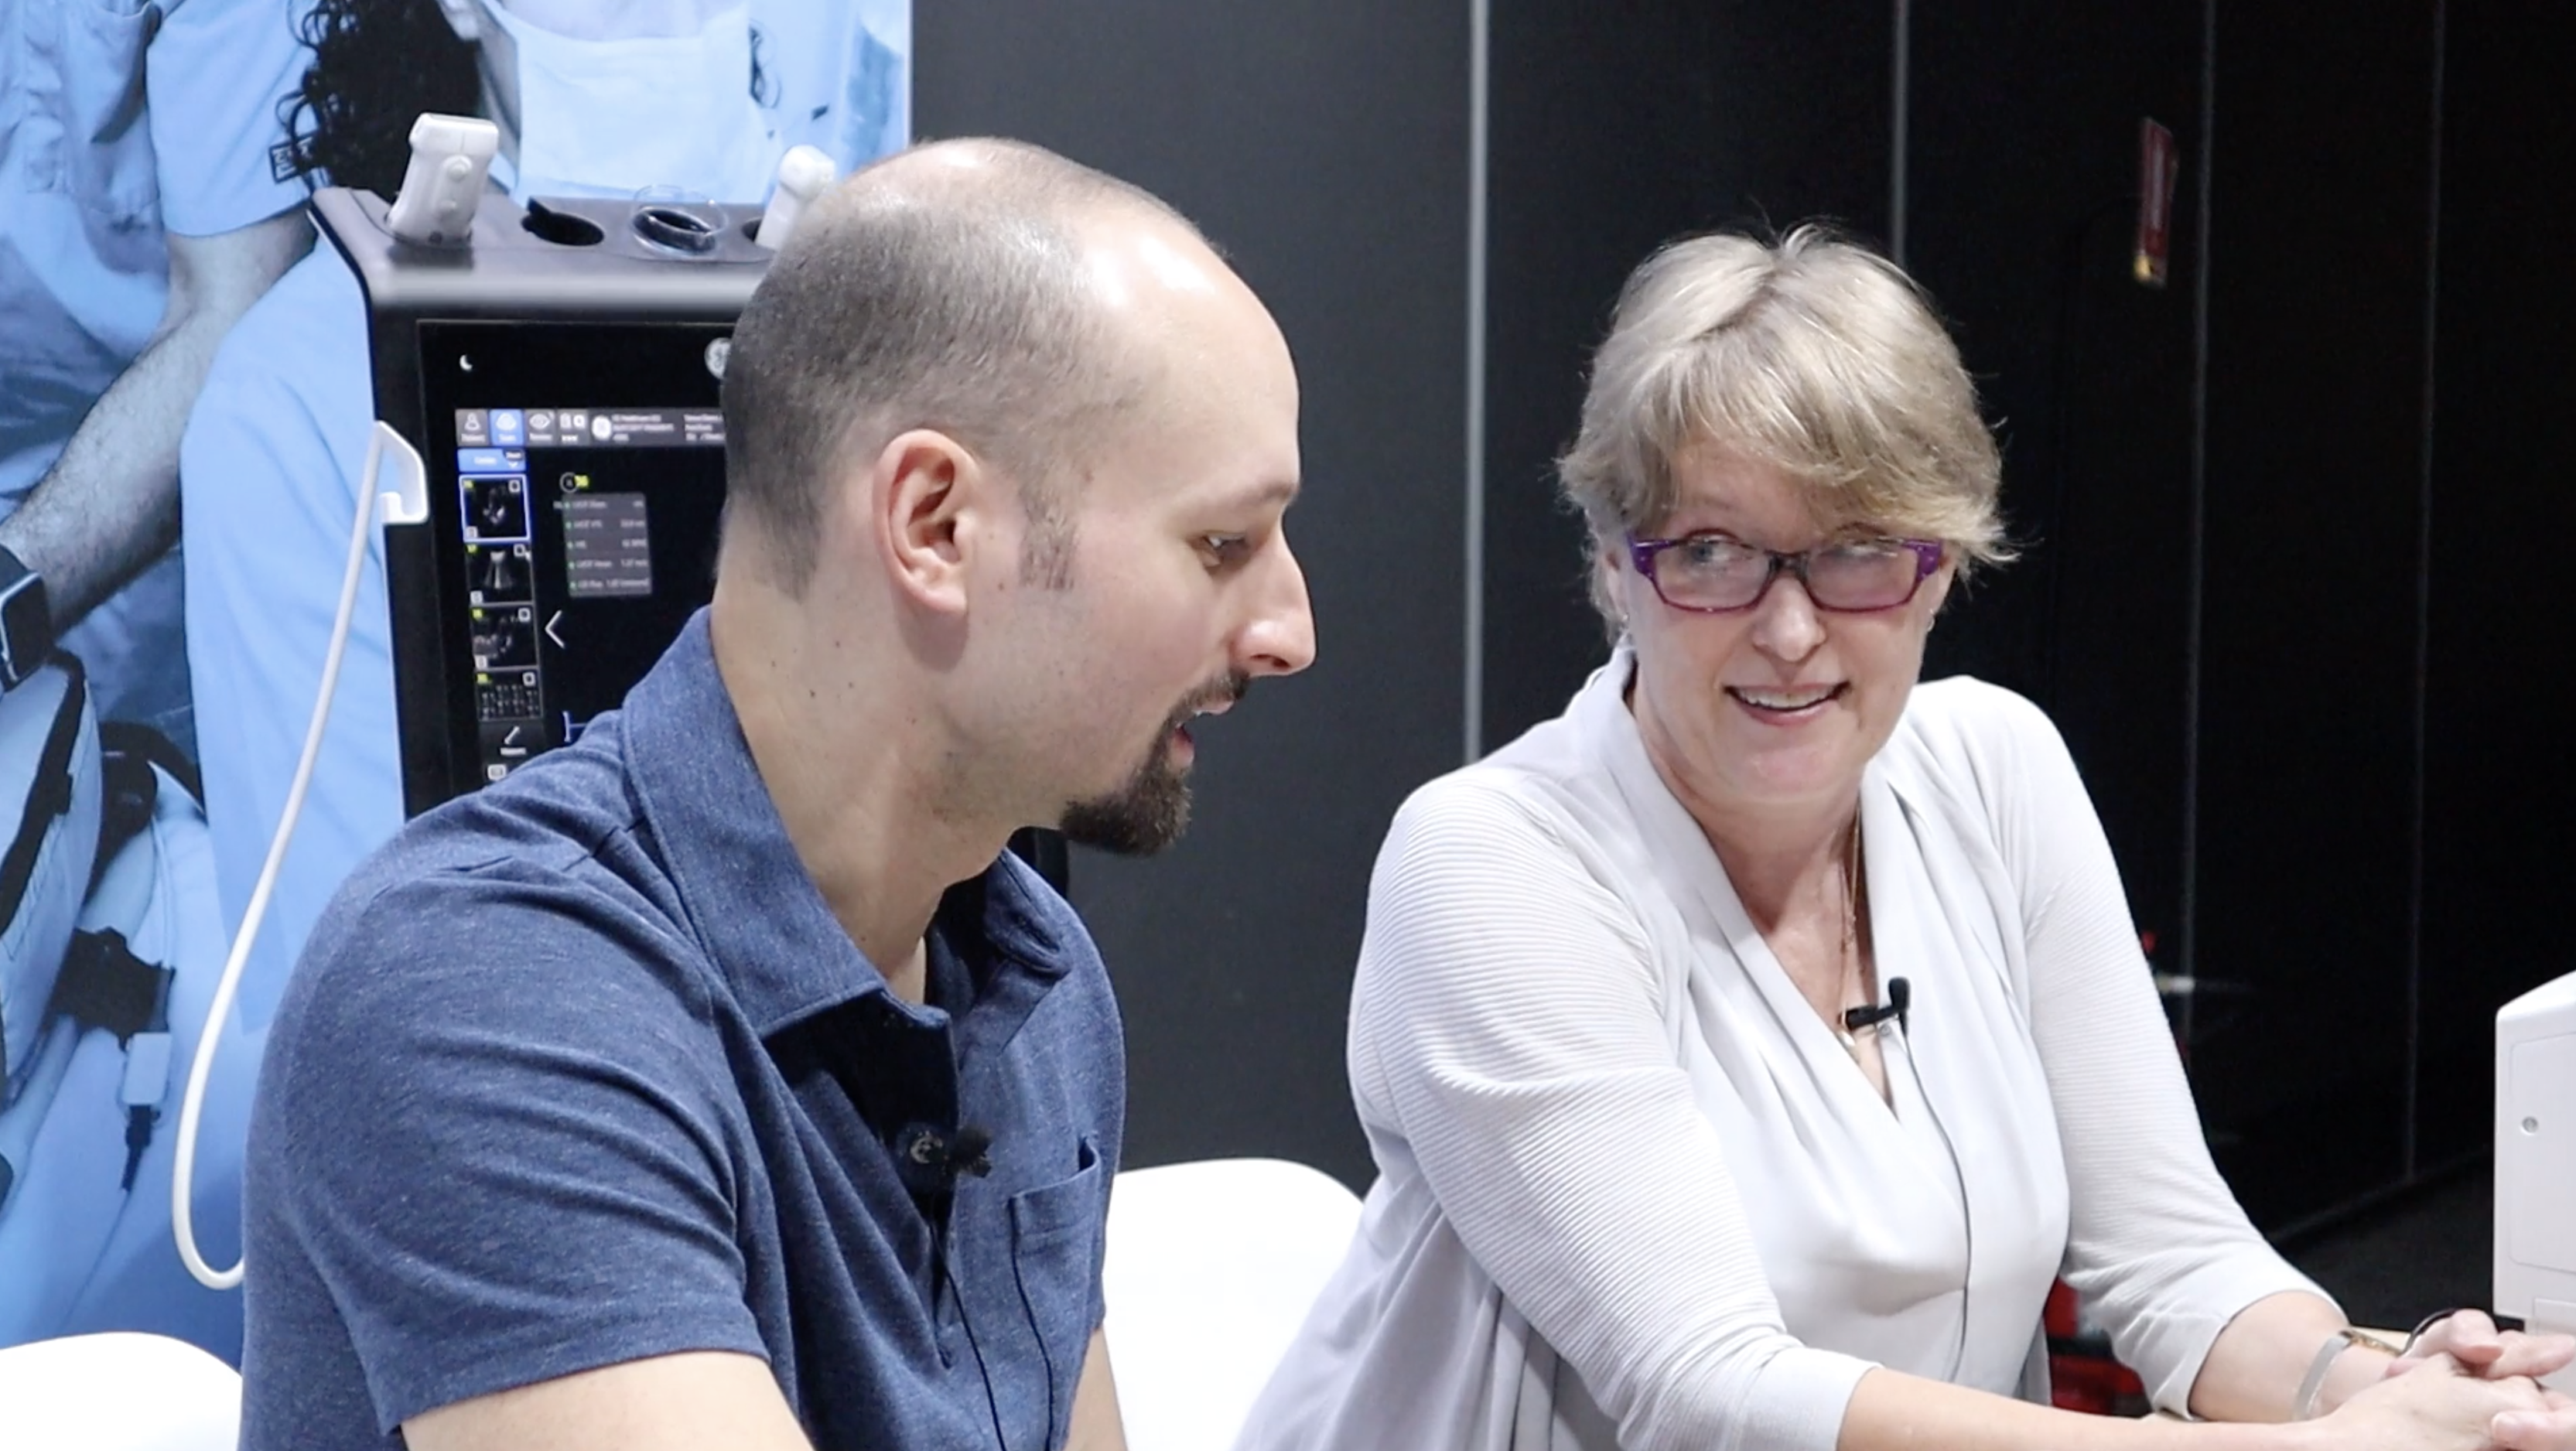 How to use ultrasound with other tools to best manage patients (with @kyliebaker888)